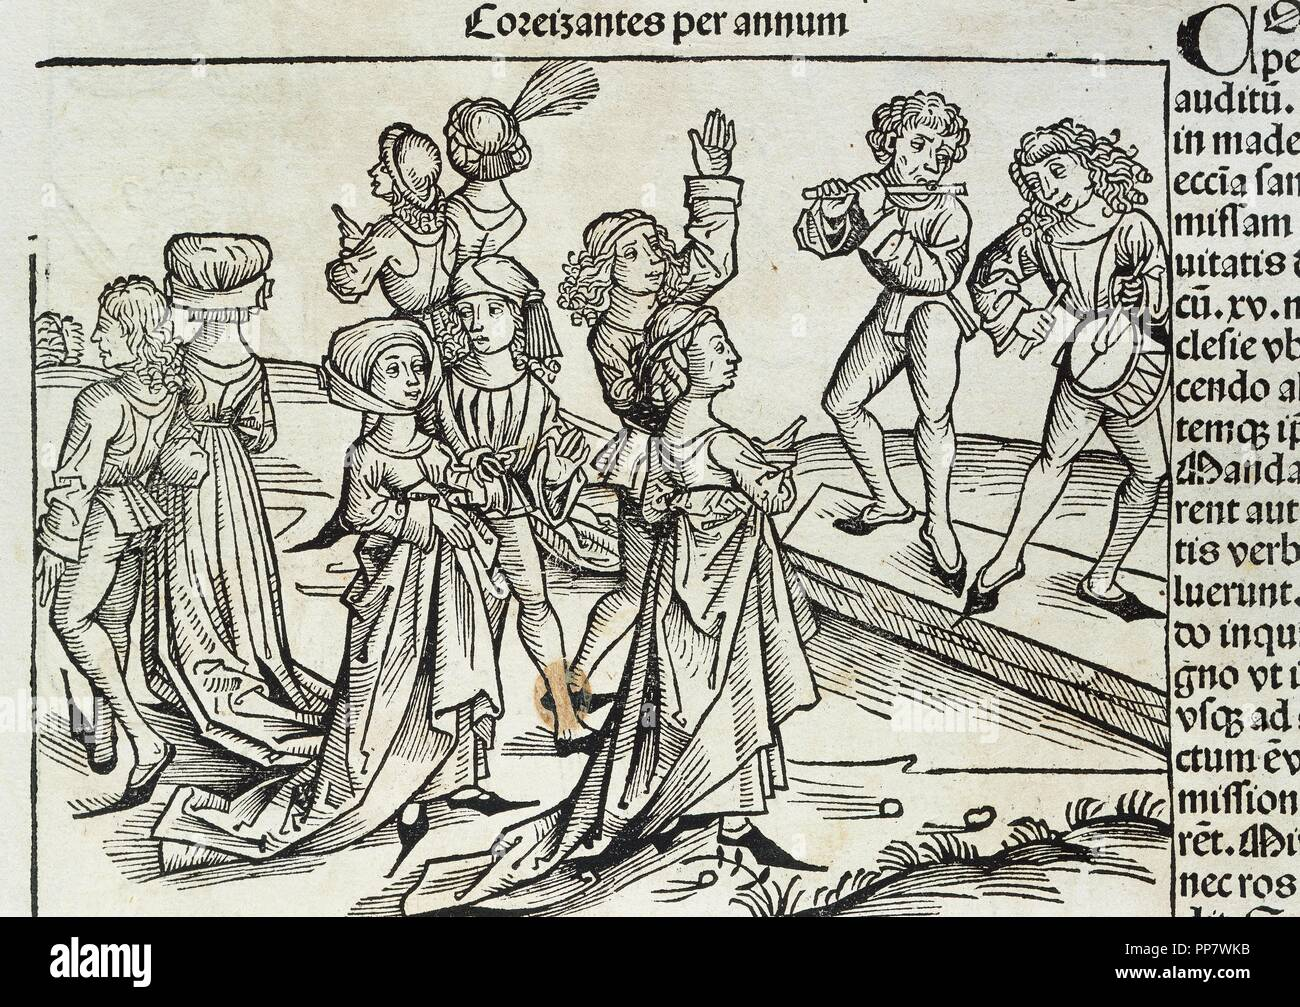 Germany. Magdeburg. 16th century. Party. Musicians playing and people dancing. Engraving in 'Liber Chronicorum', by Hartman Schedel. - Stock Image